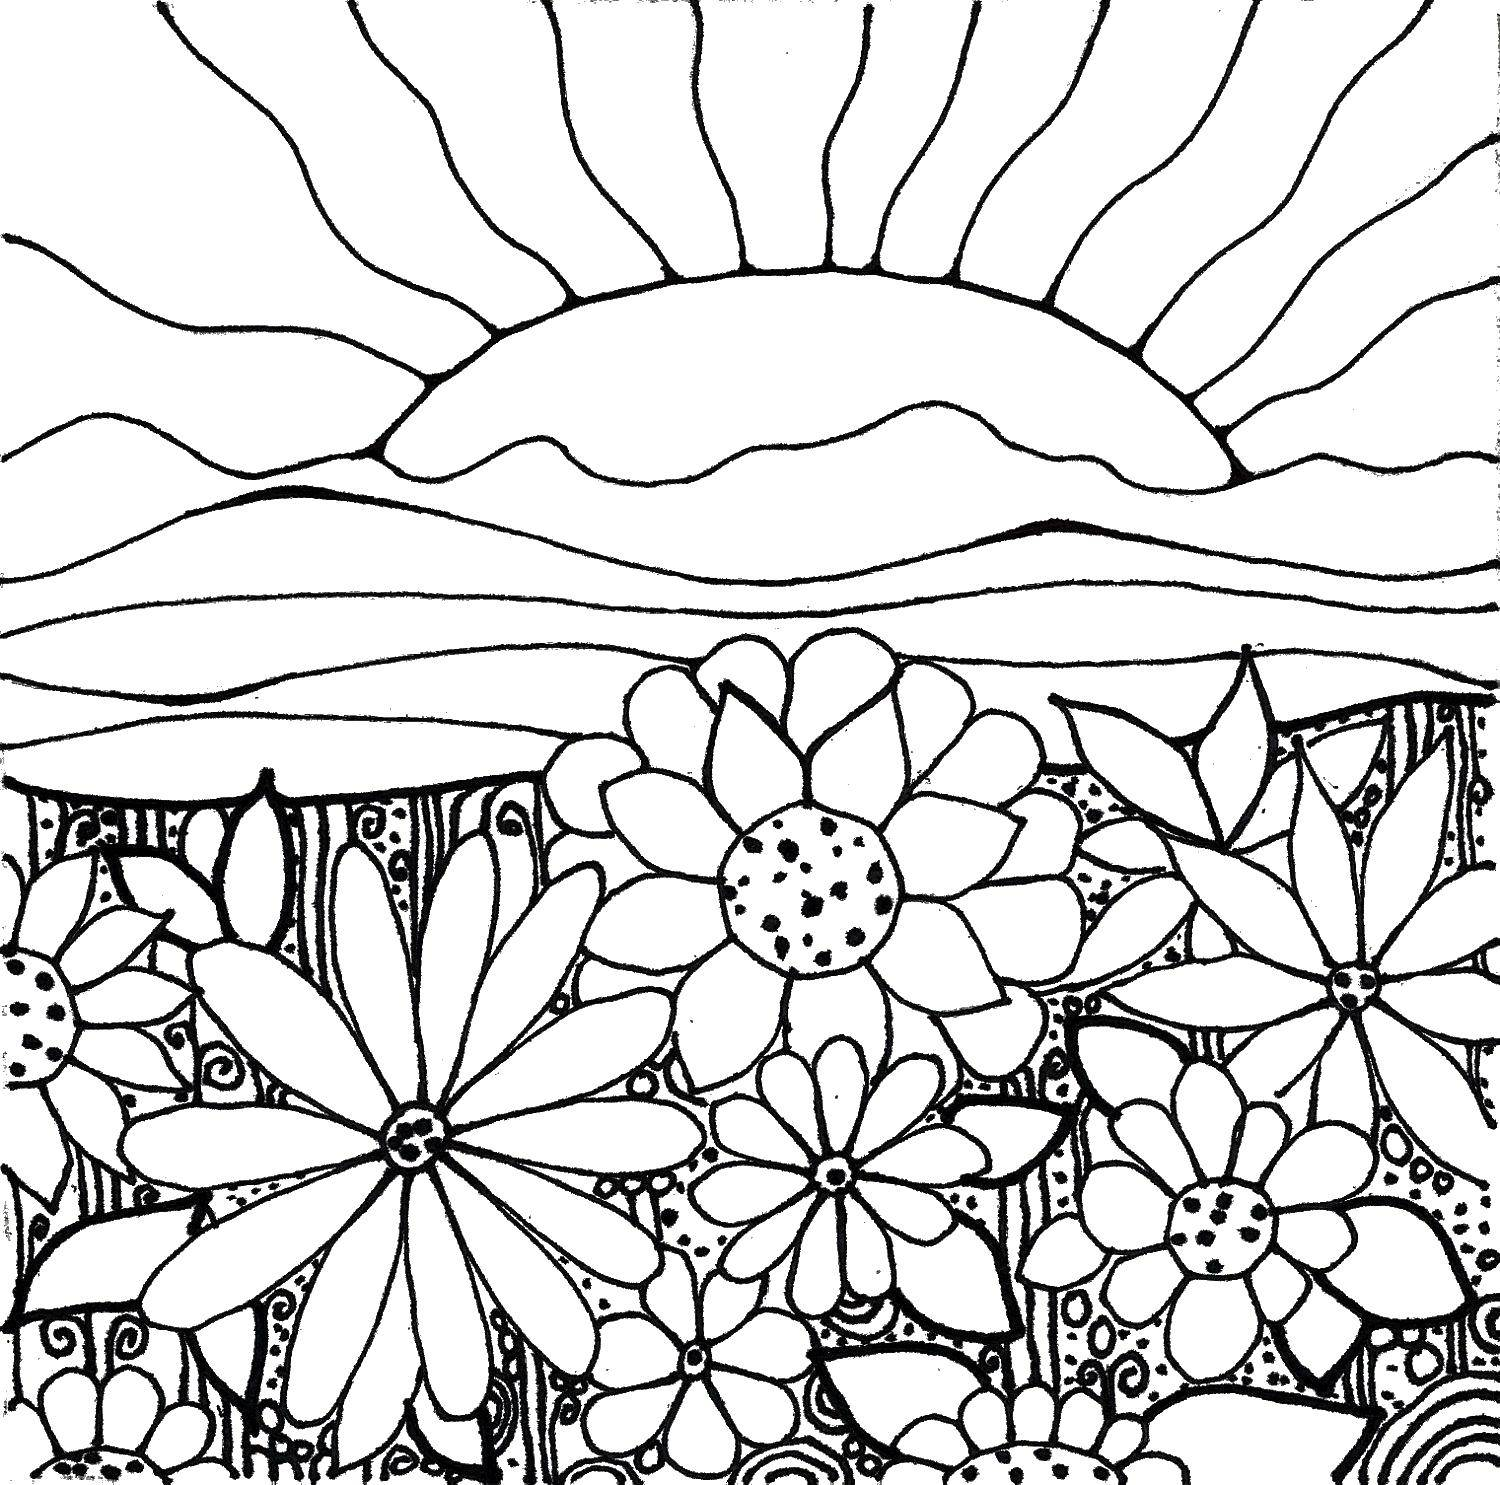 Coloring Sunrise over flowers Download ,Sun, rays, joy,.  Print